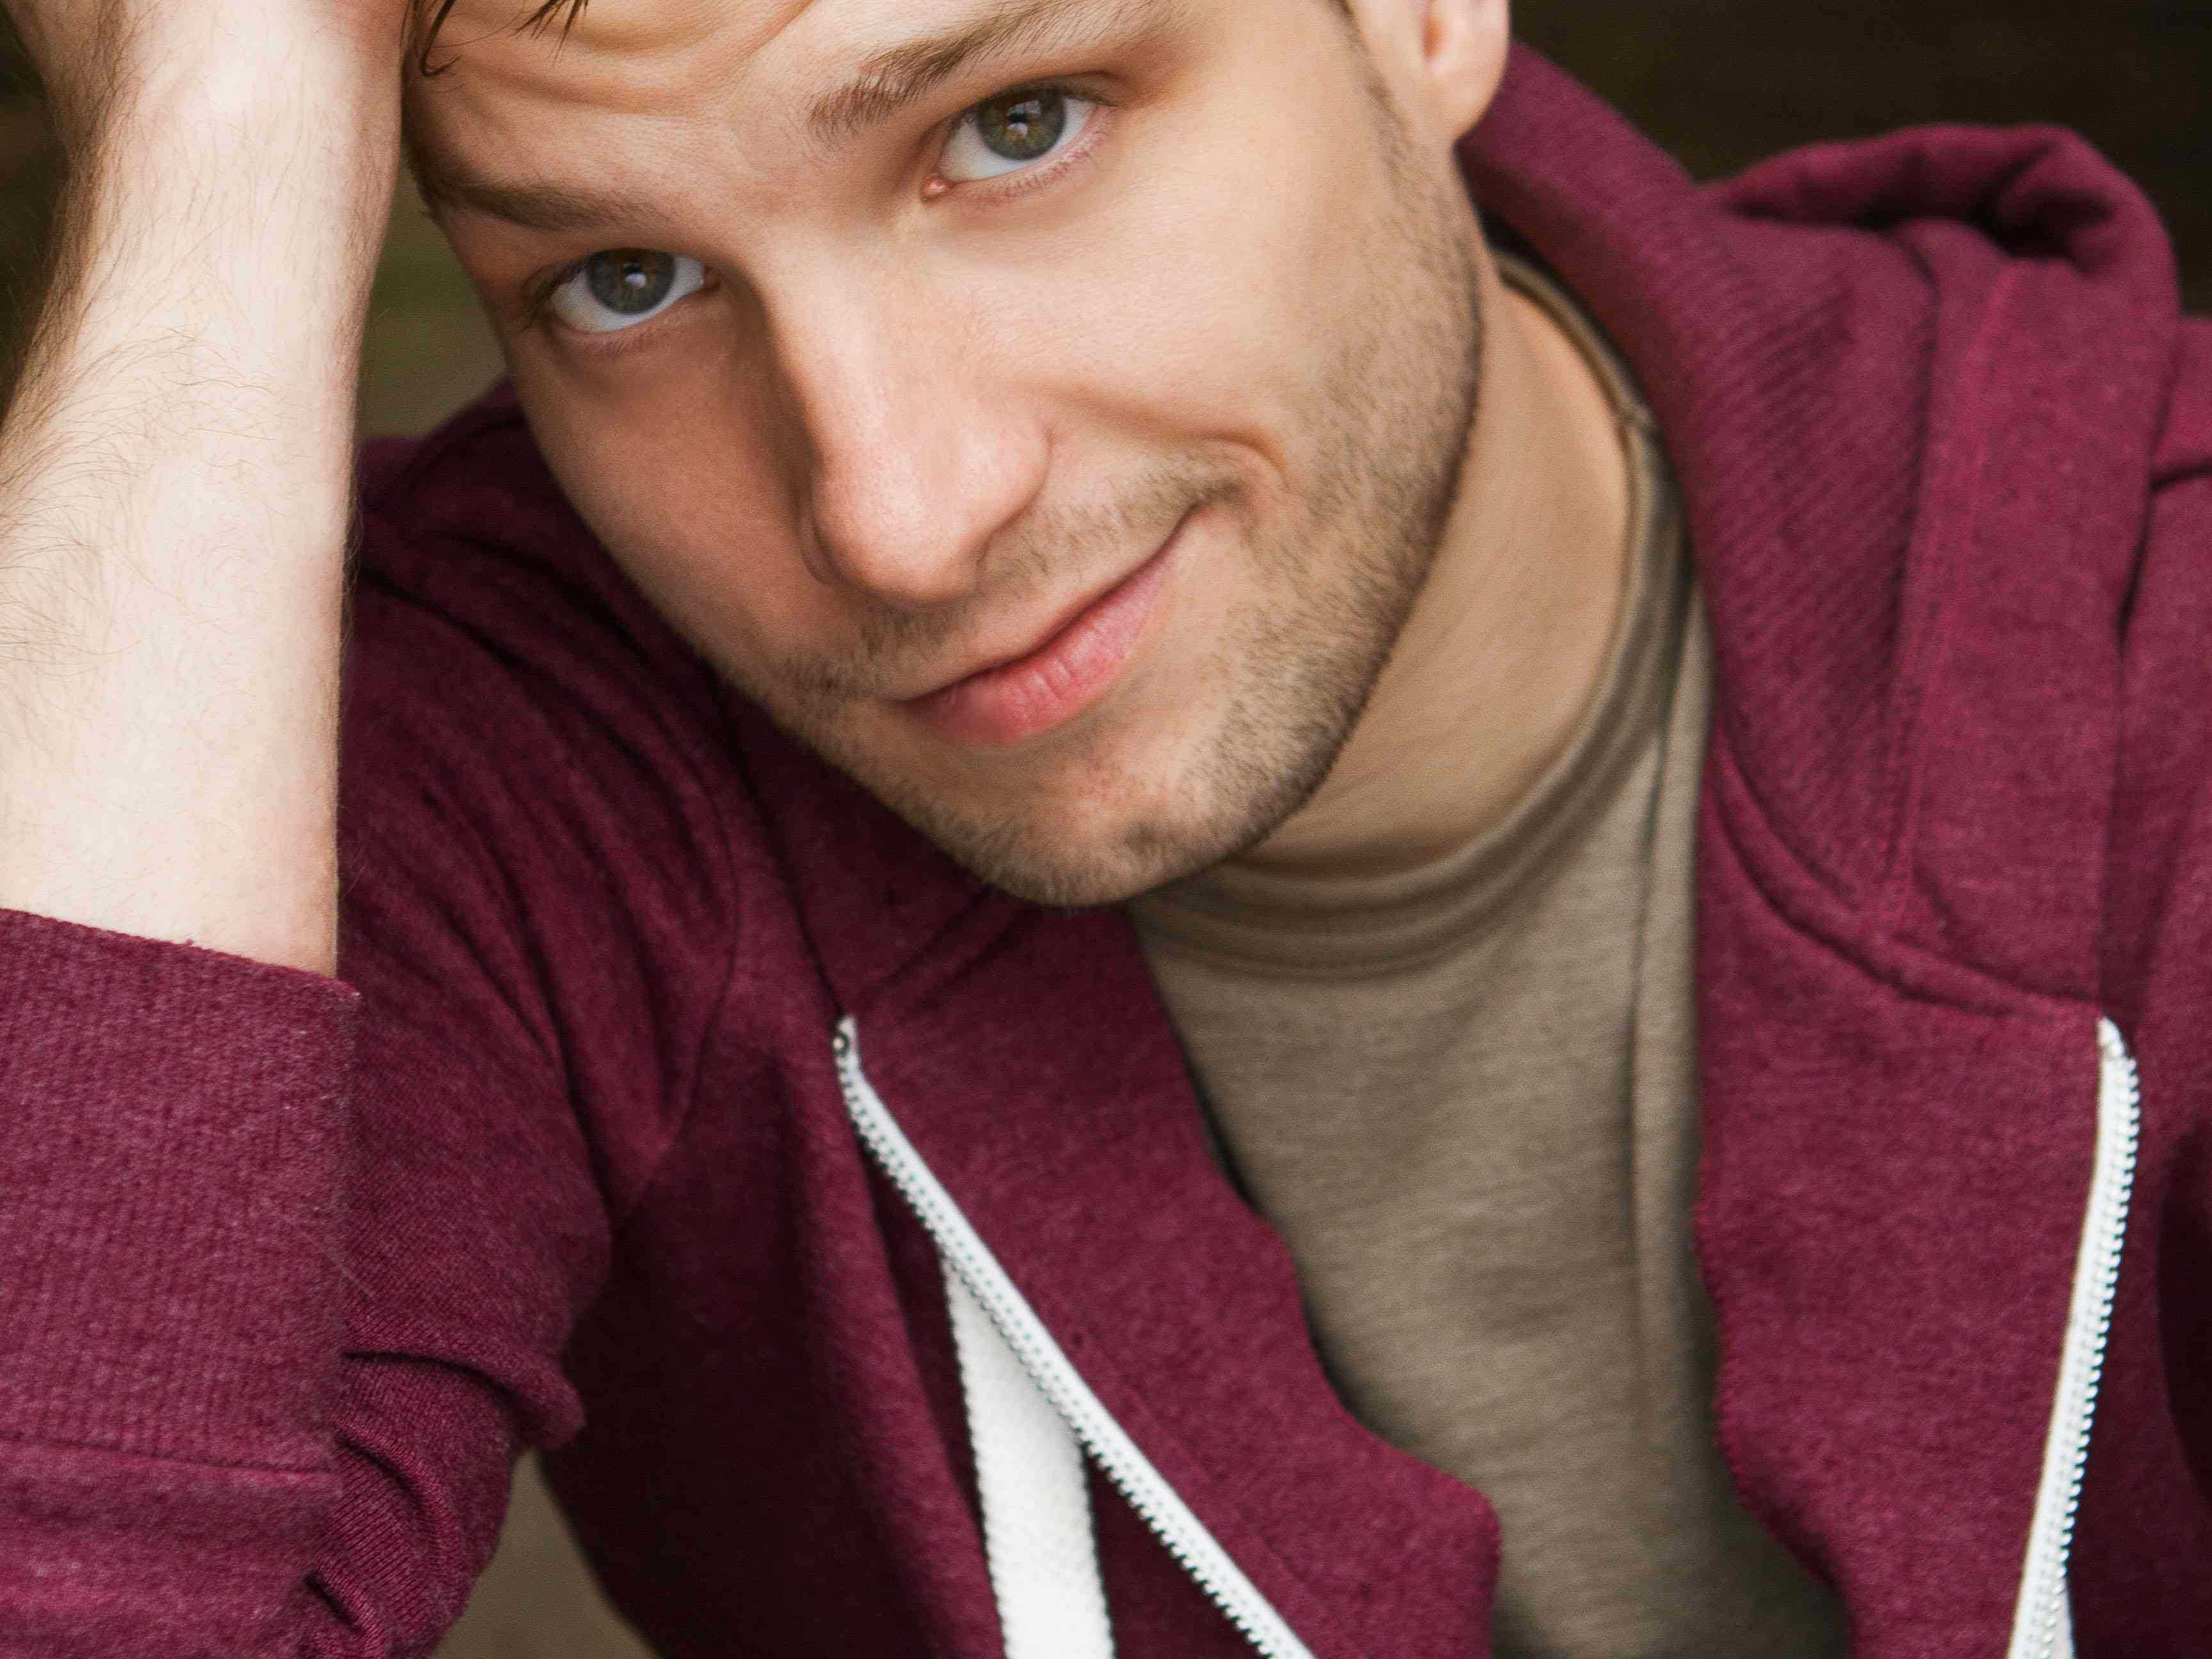 Learning on the Job: Christian O'Brien on 'The Boys Next Door'